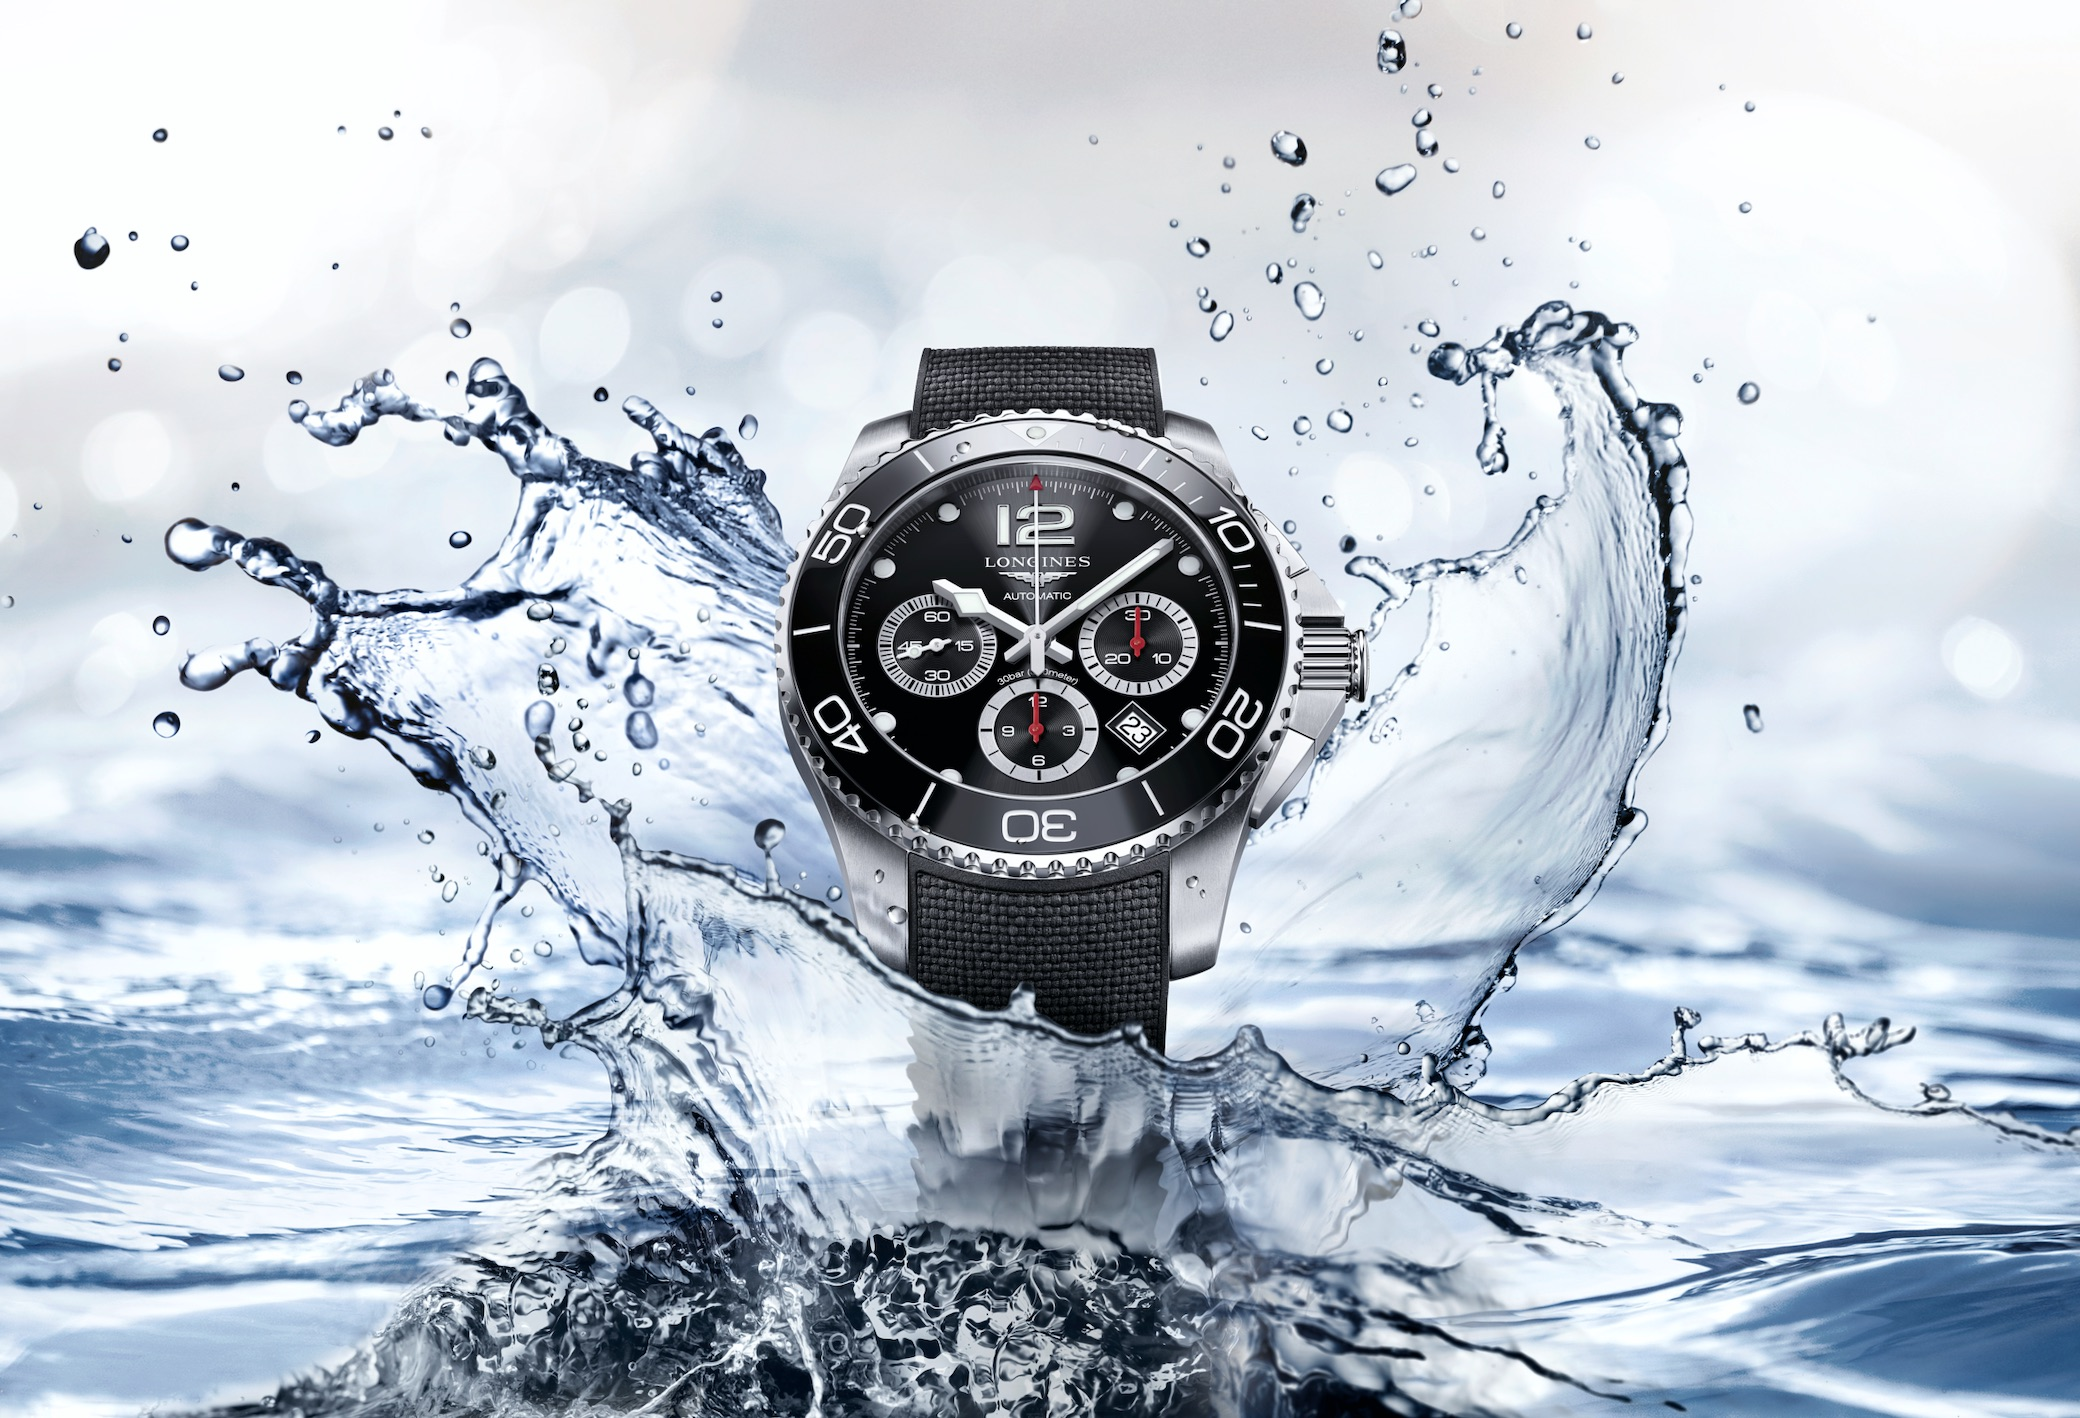 The Longines HydroConquest chronograph